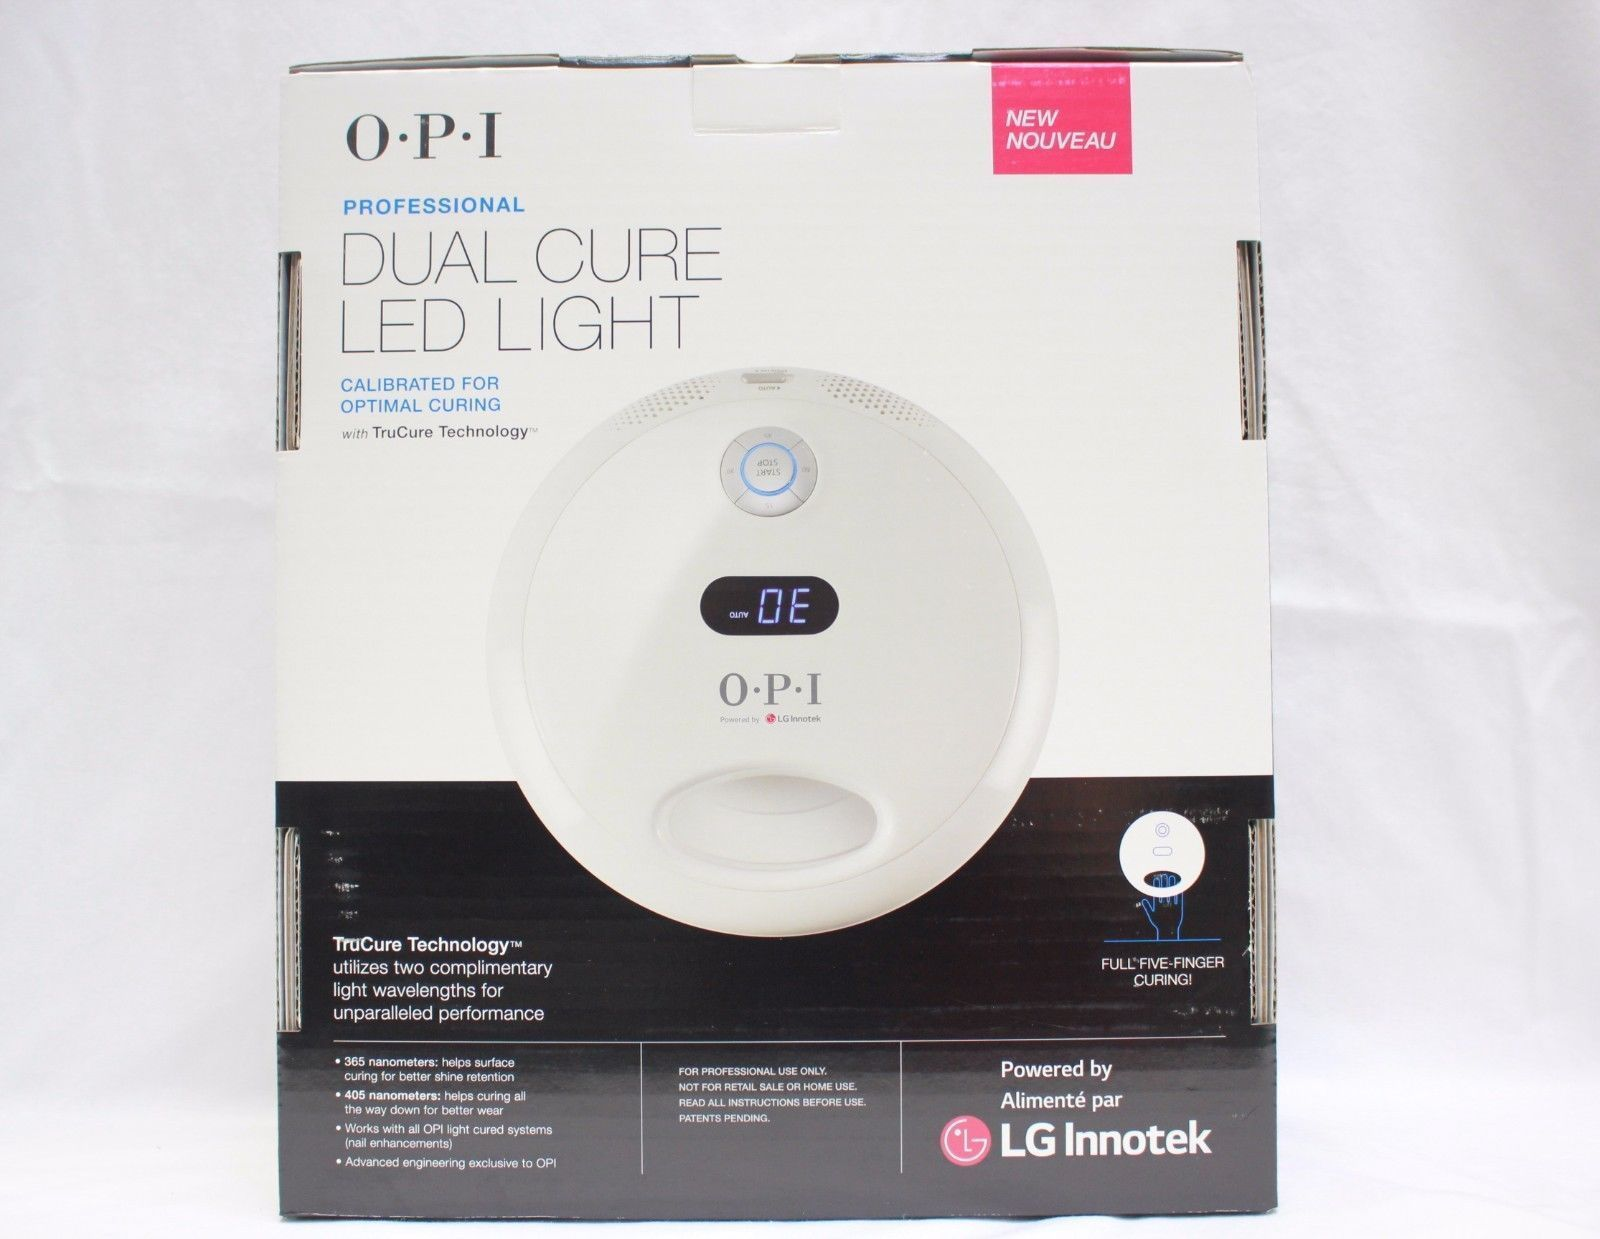 NEW 2017 OPI Dual Cure LED Lamp Light   100% And Similar Items